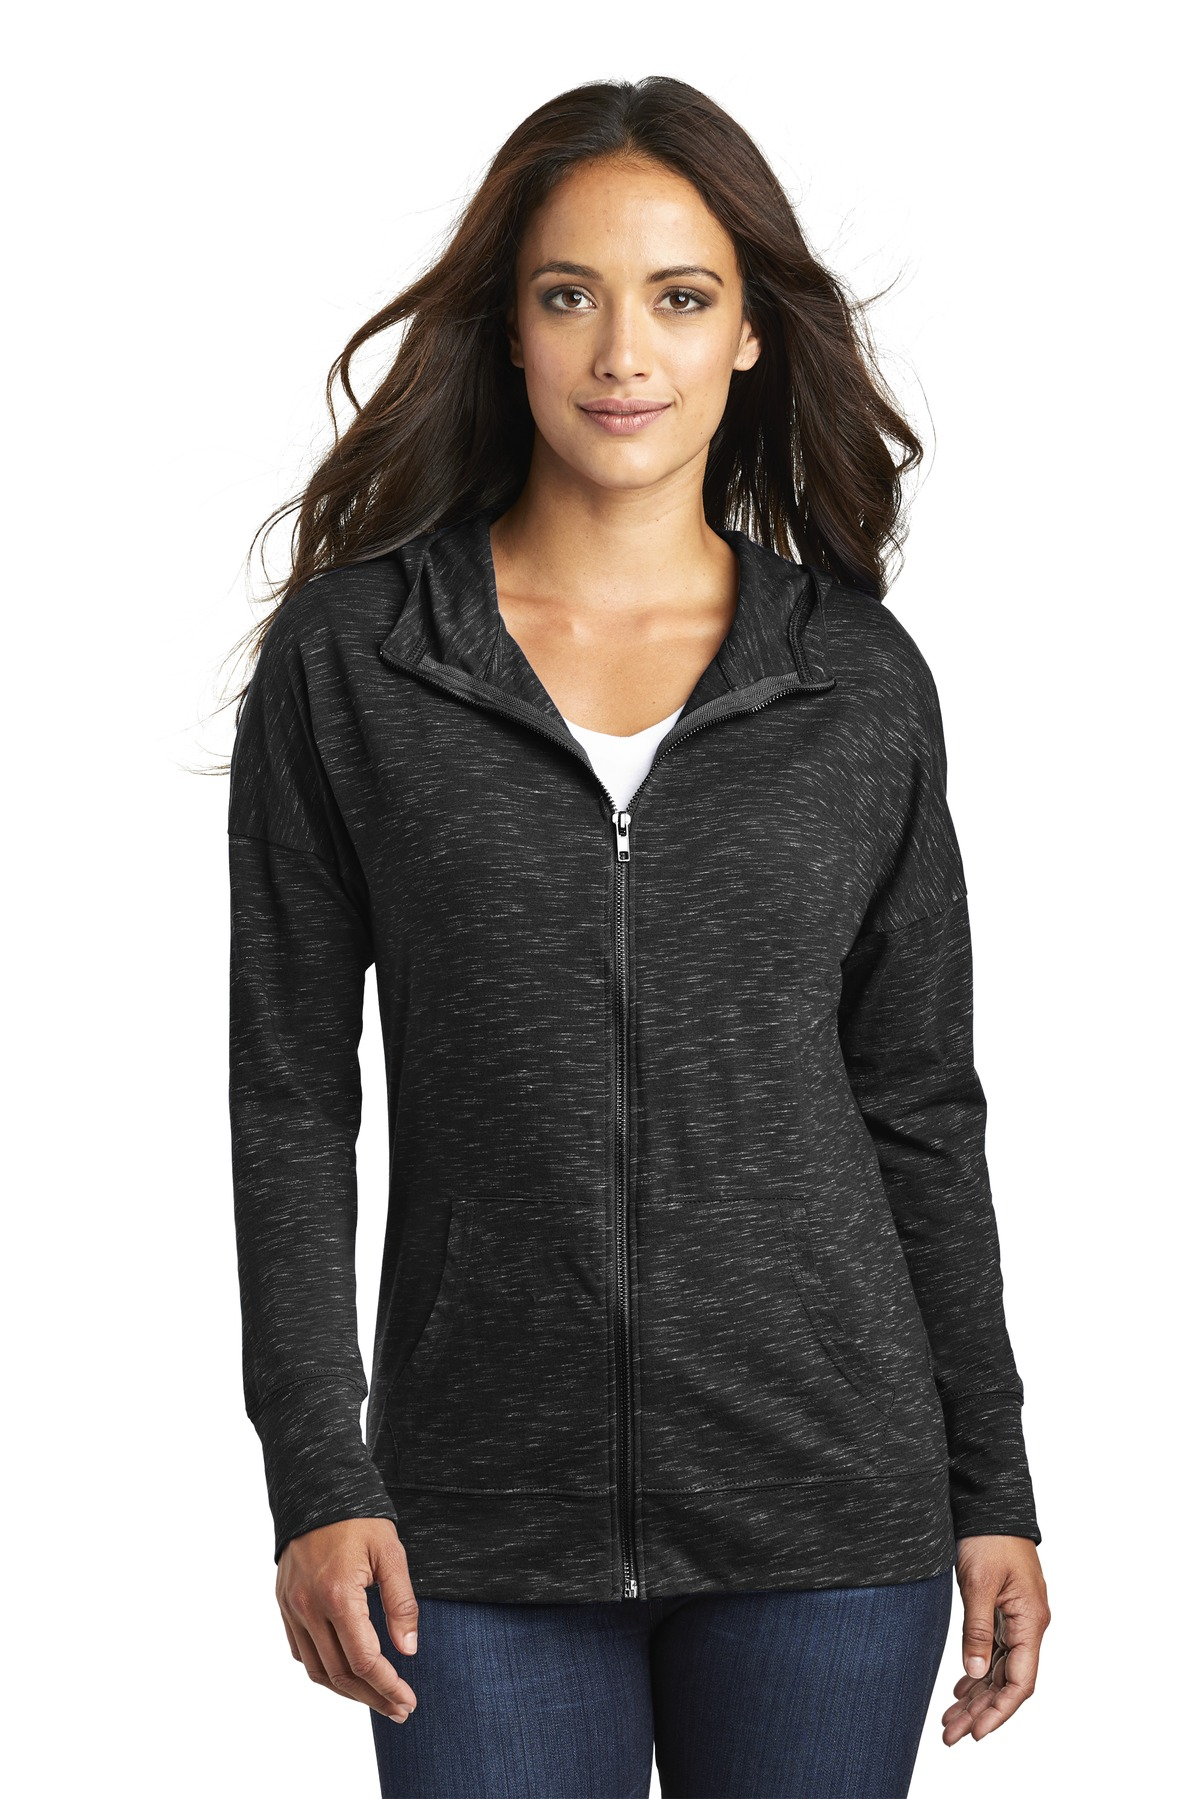 District  ®  Women's Medal Full-Zip Hoodie. DT665 - Black